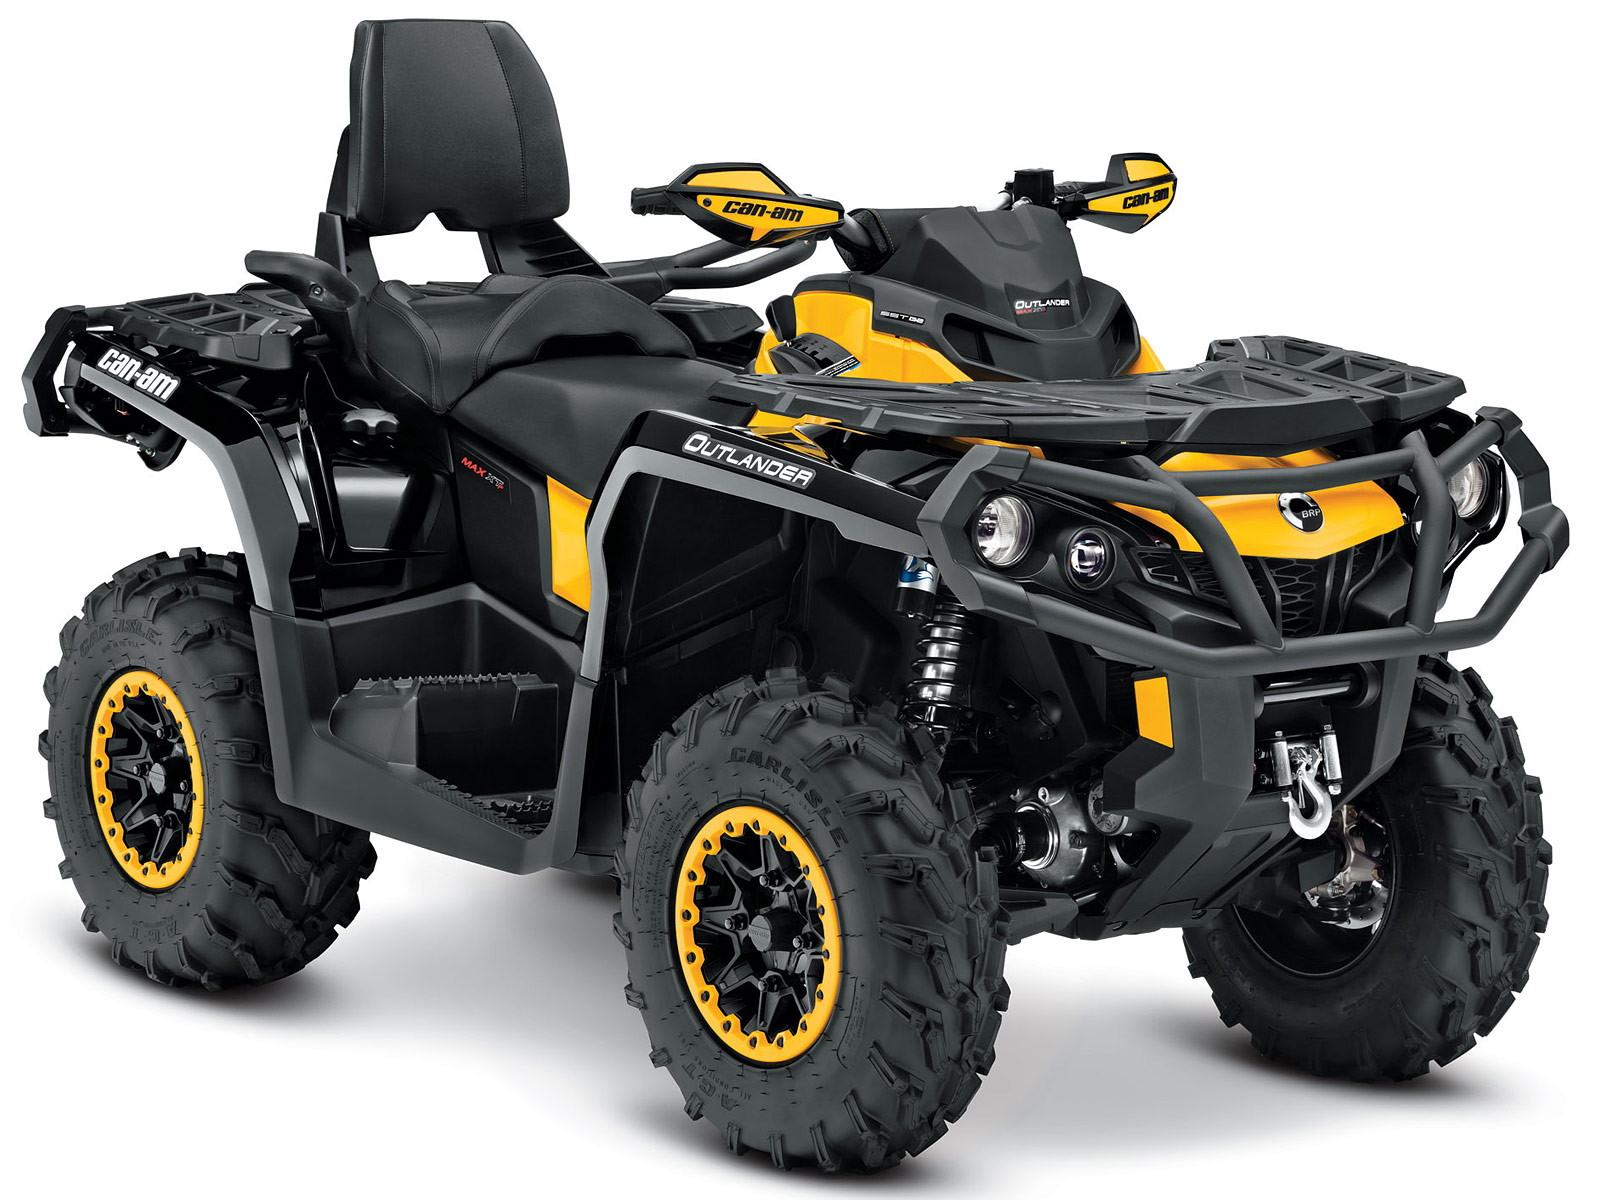 2013 can am outlander max xt p 1000 review pictures. Black Bedroom Furniture Sets. Home Design Ideas